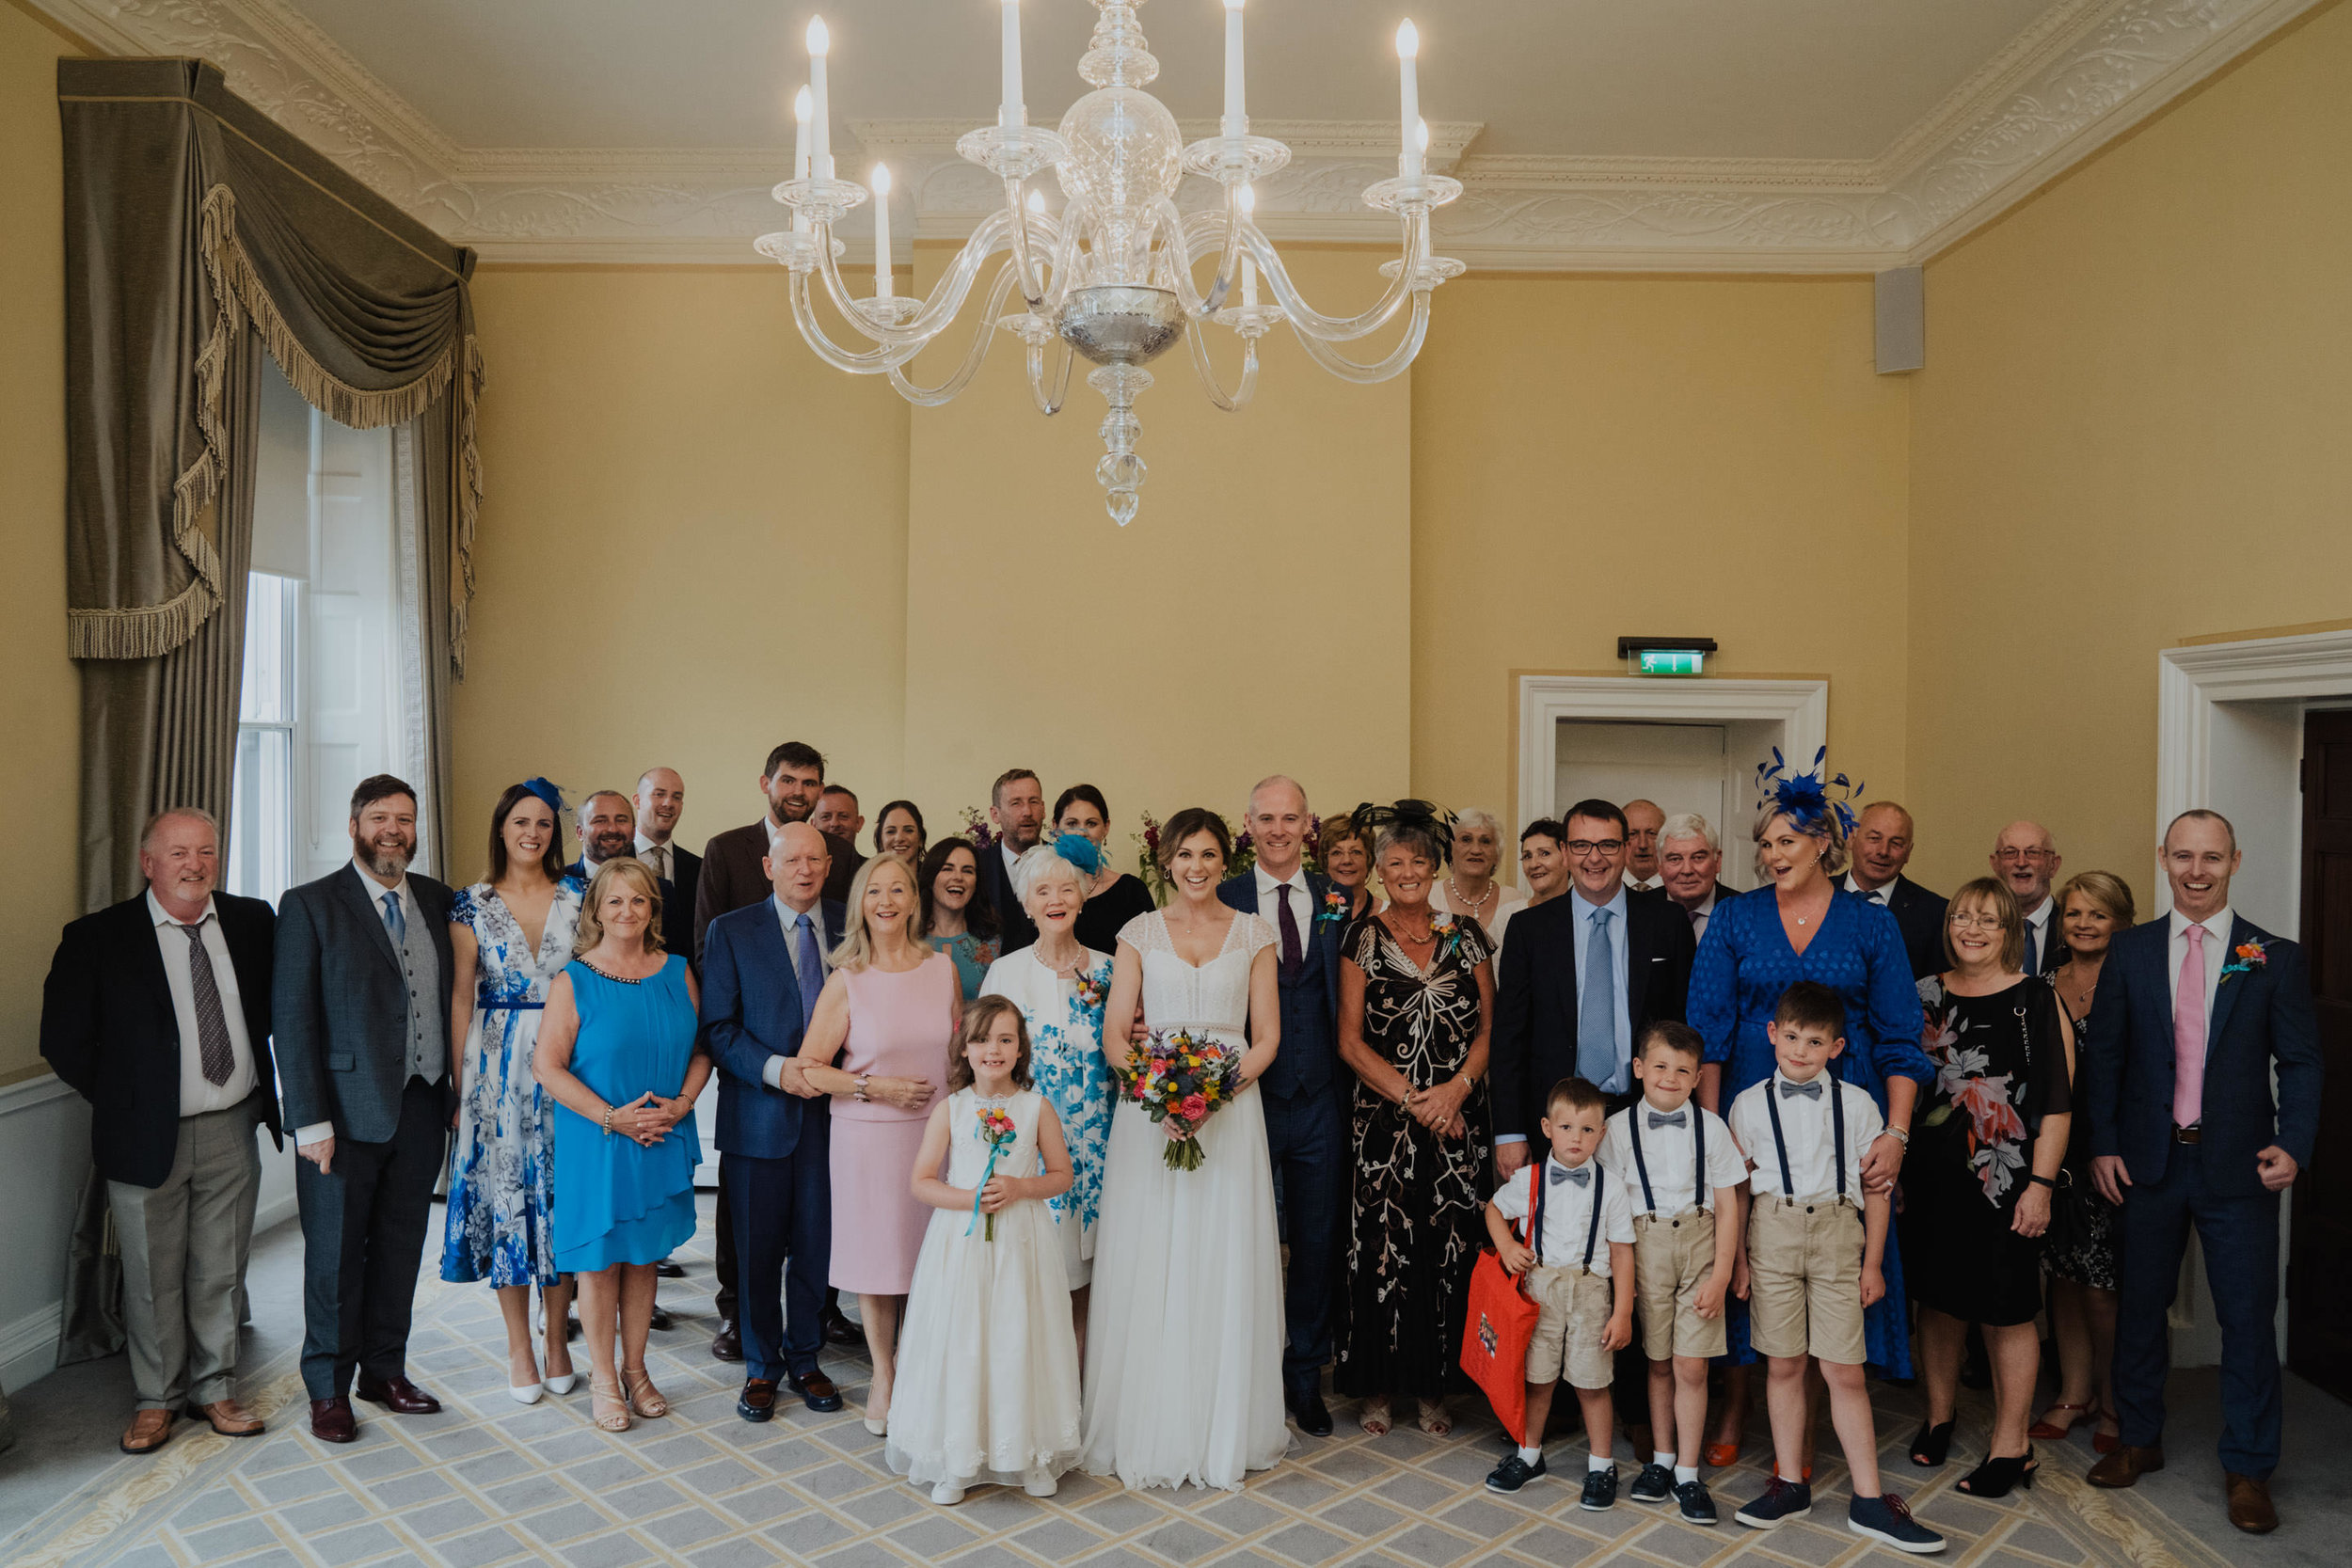 s&r_the_shelbourne_hotel_wedding_photographer_livia_figueiredo_9.jpg